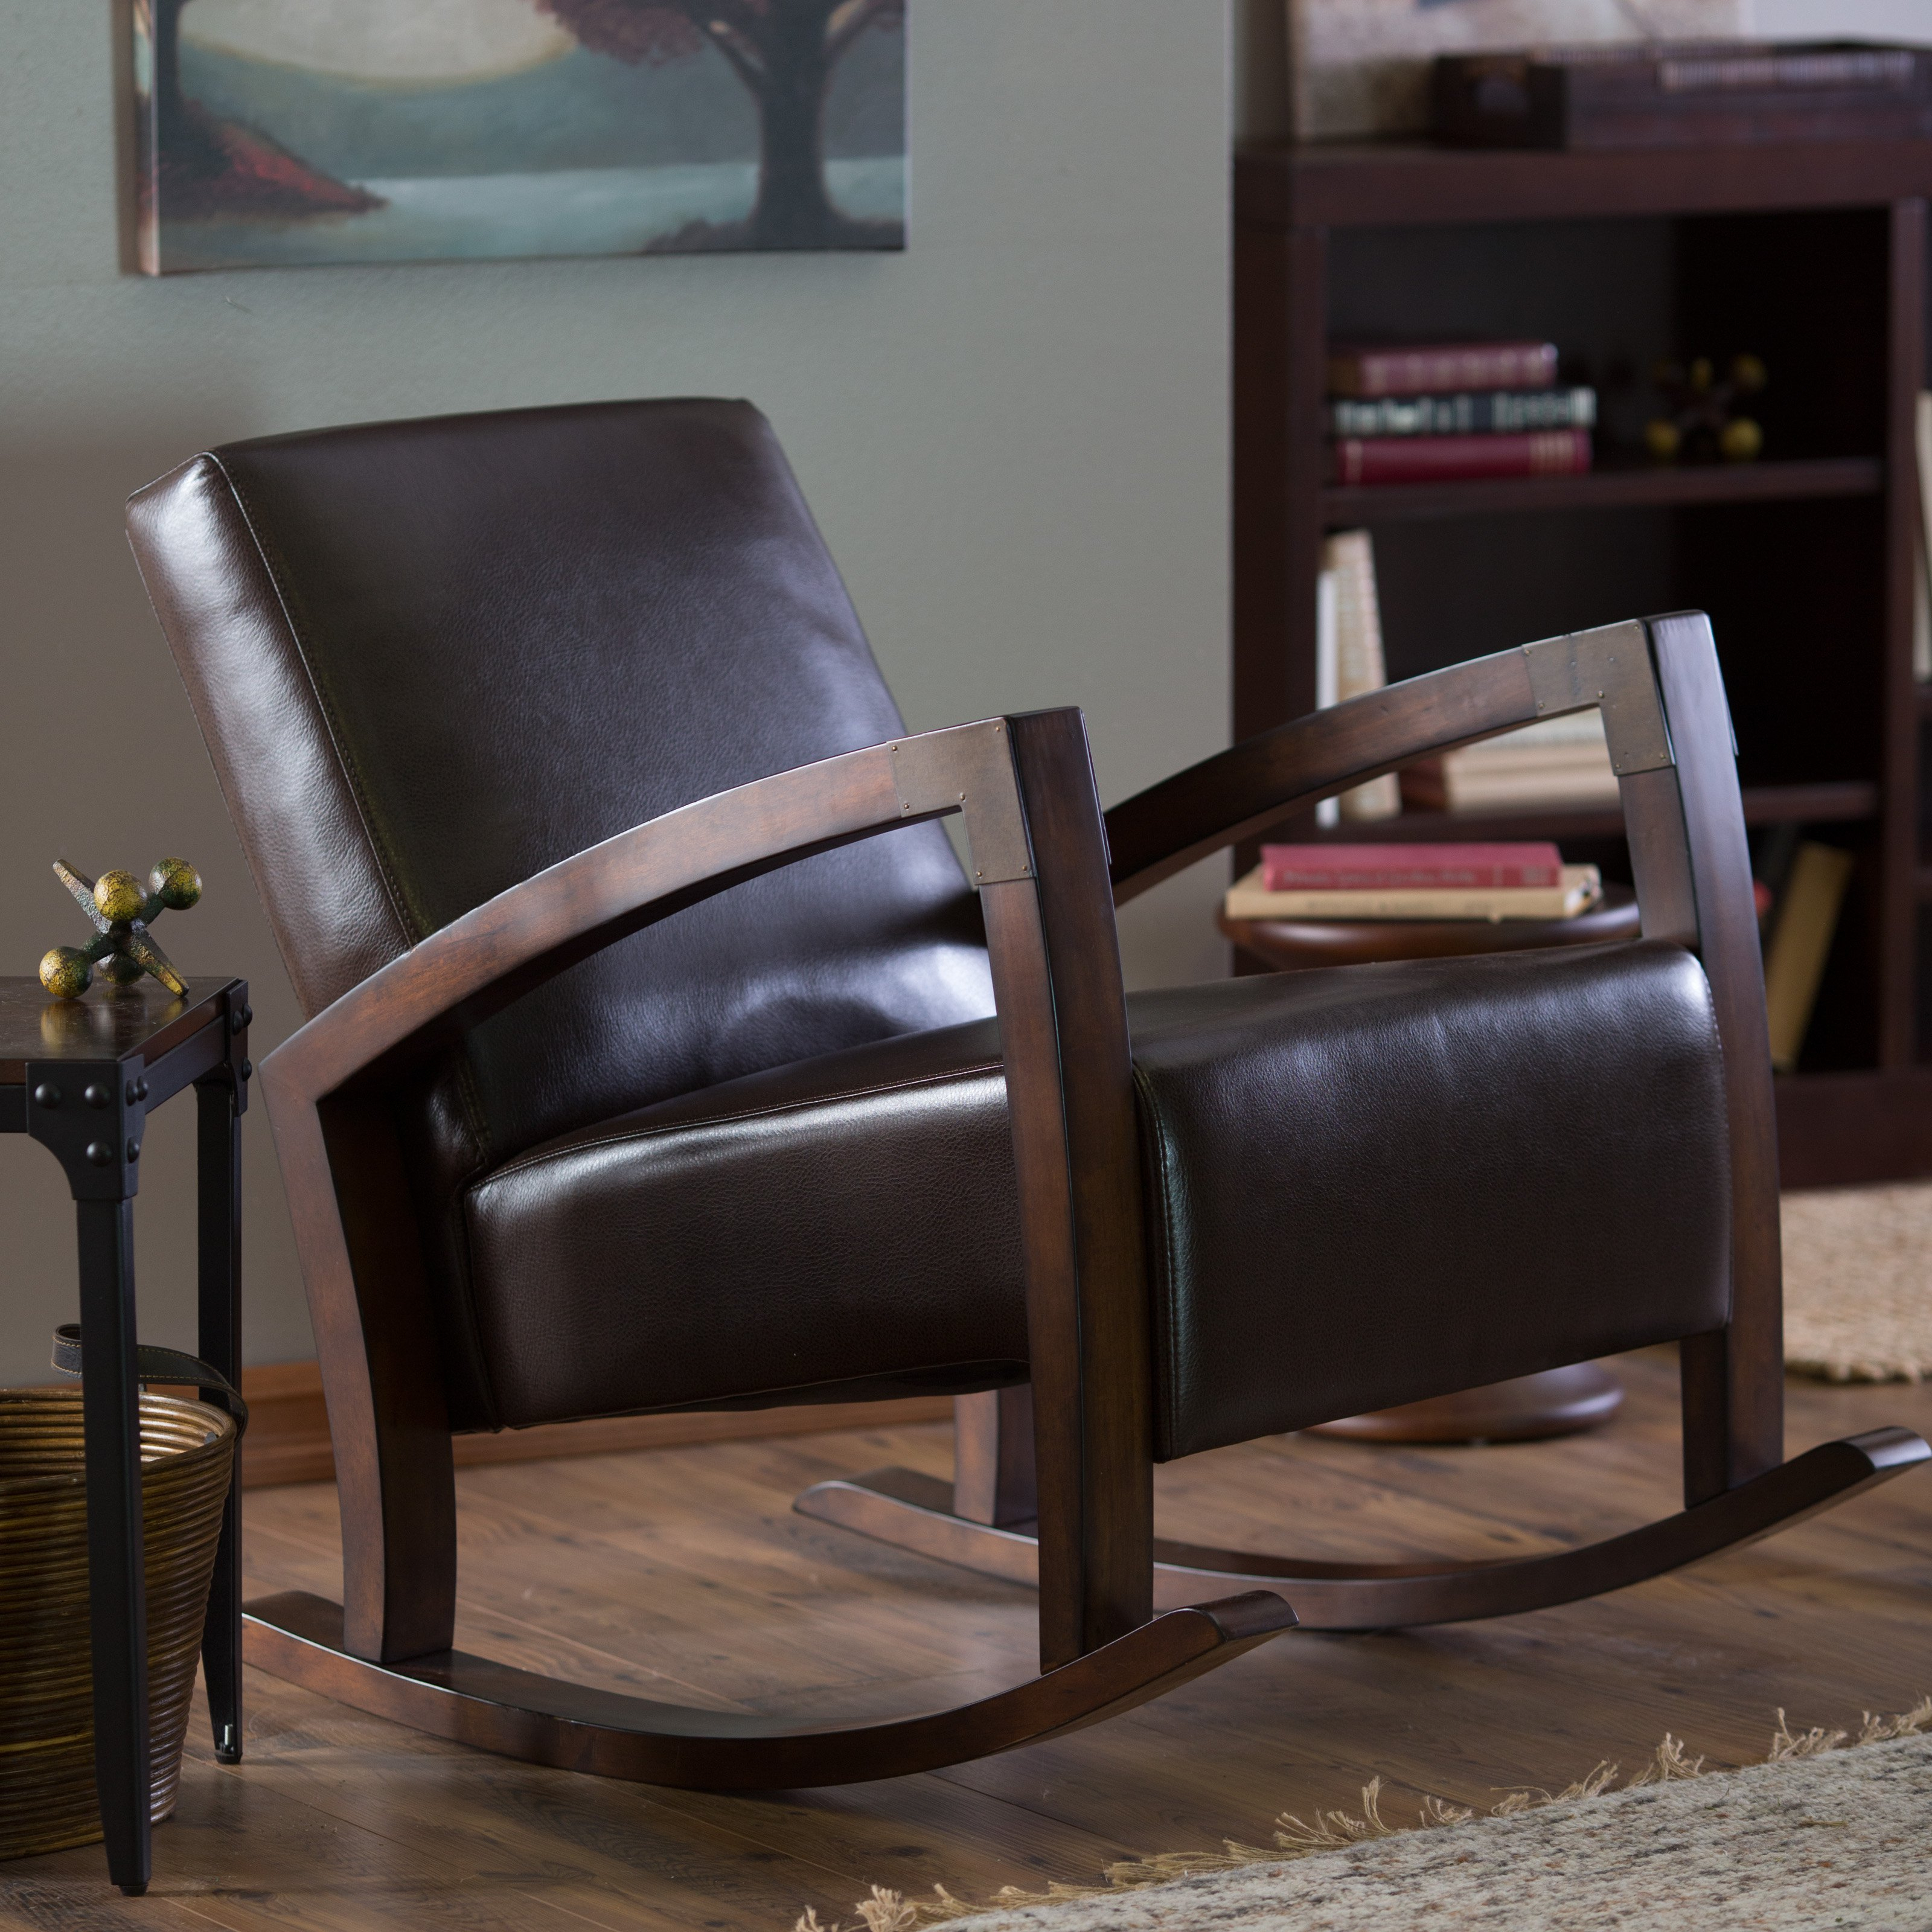 Belham Living Frederick Mission Rocking Chair With Regard To Mission Design Wood Rocking Chairs With Brown Leather Seat (#4 of 20)